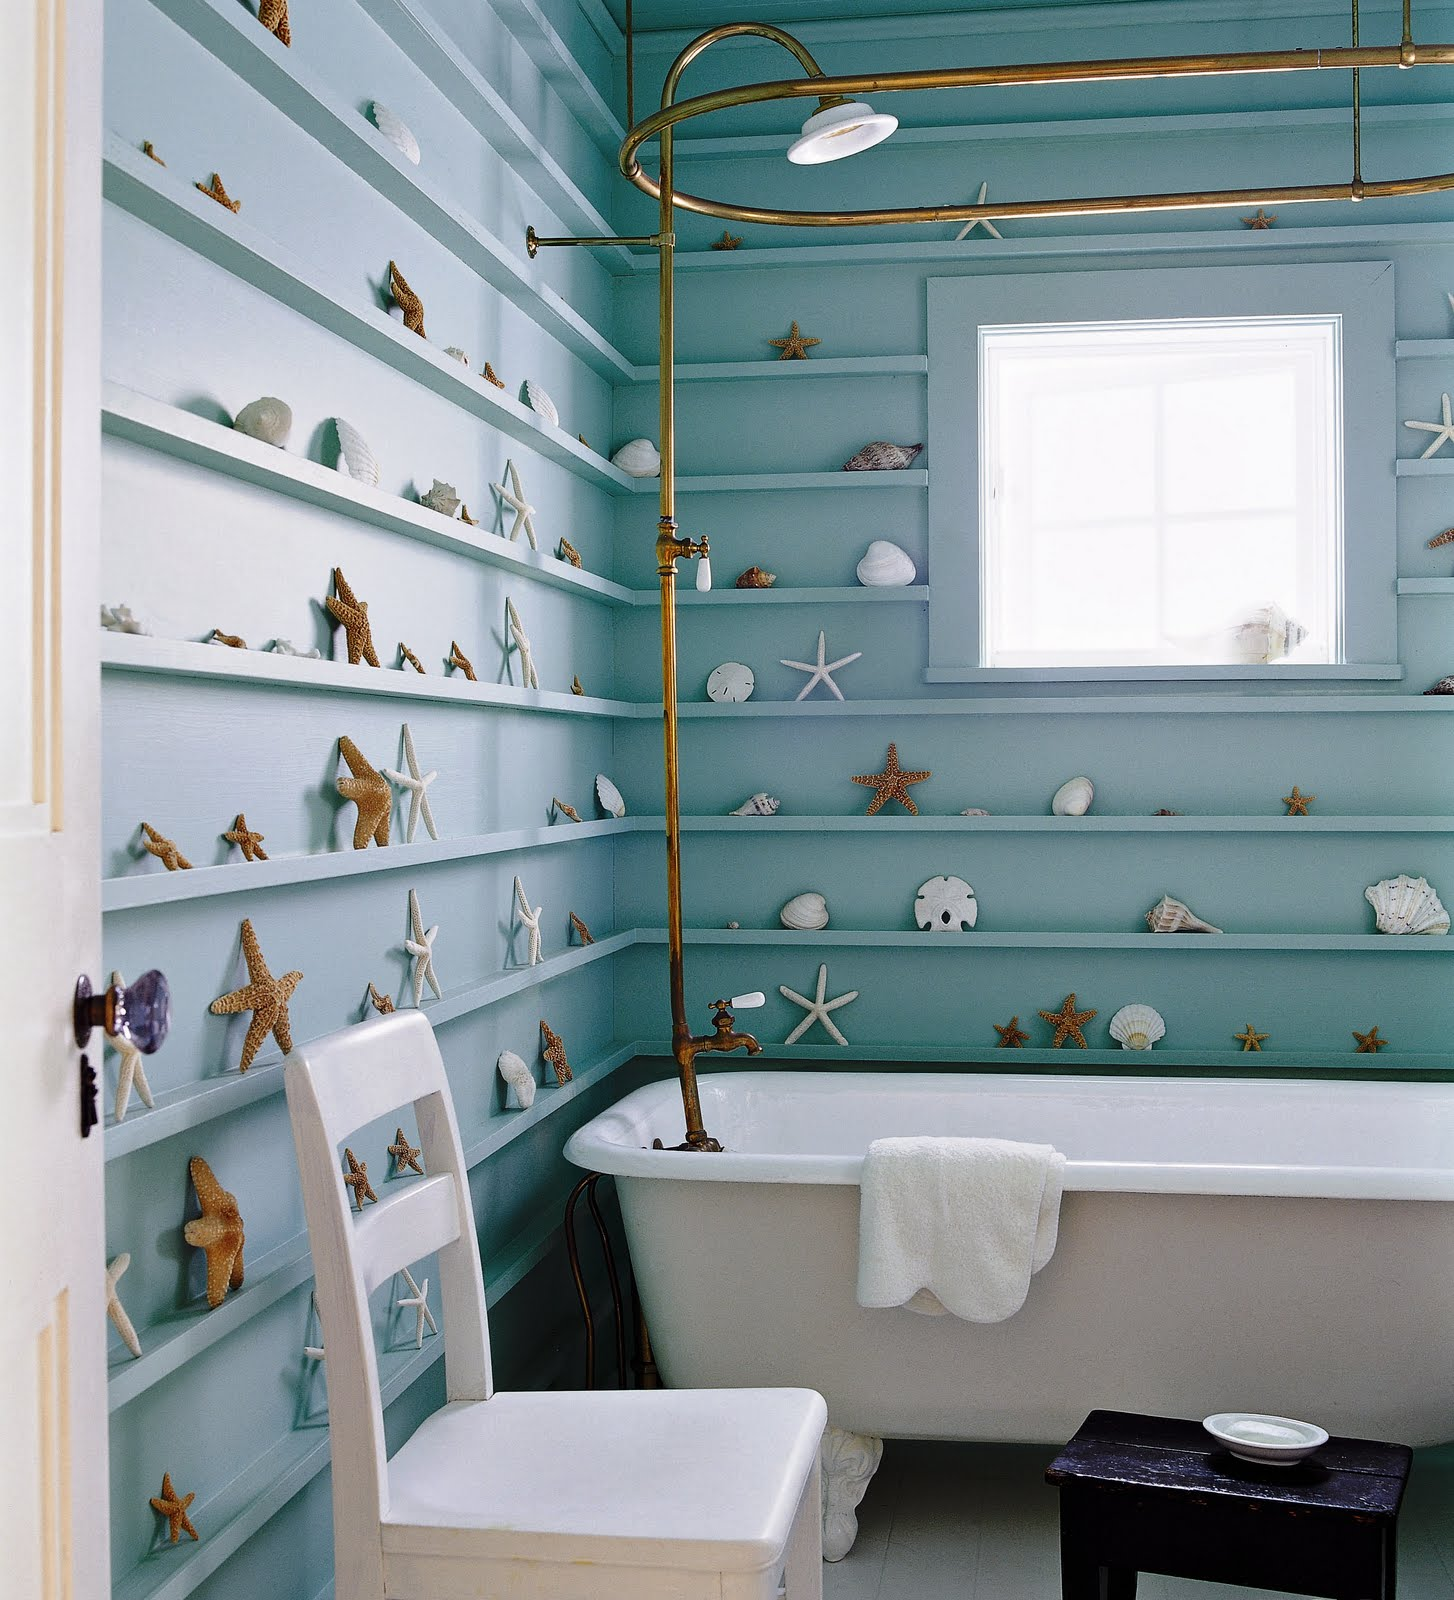 Ez decorating know how bathroom designs the nautical for Coastal bathroom design